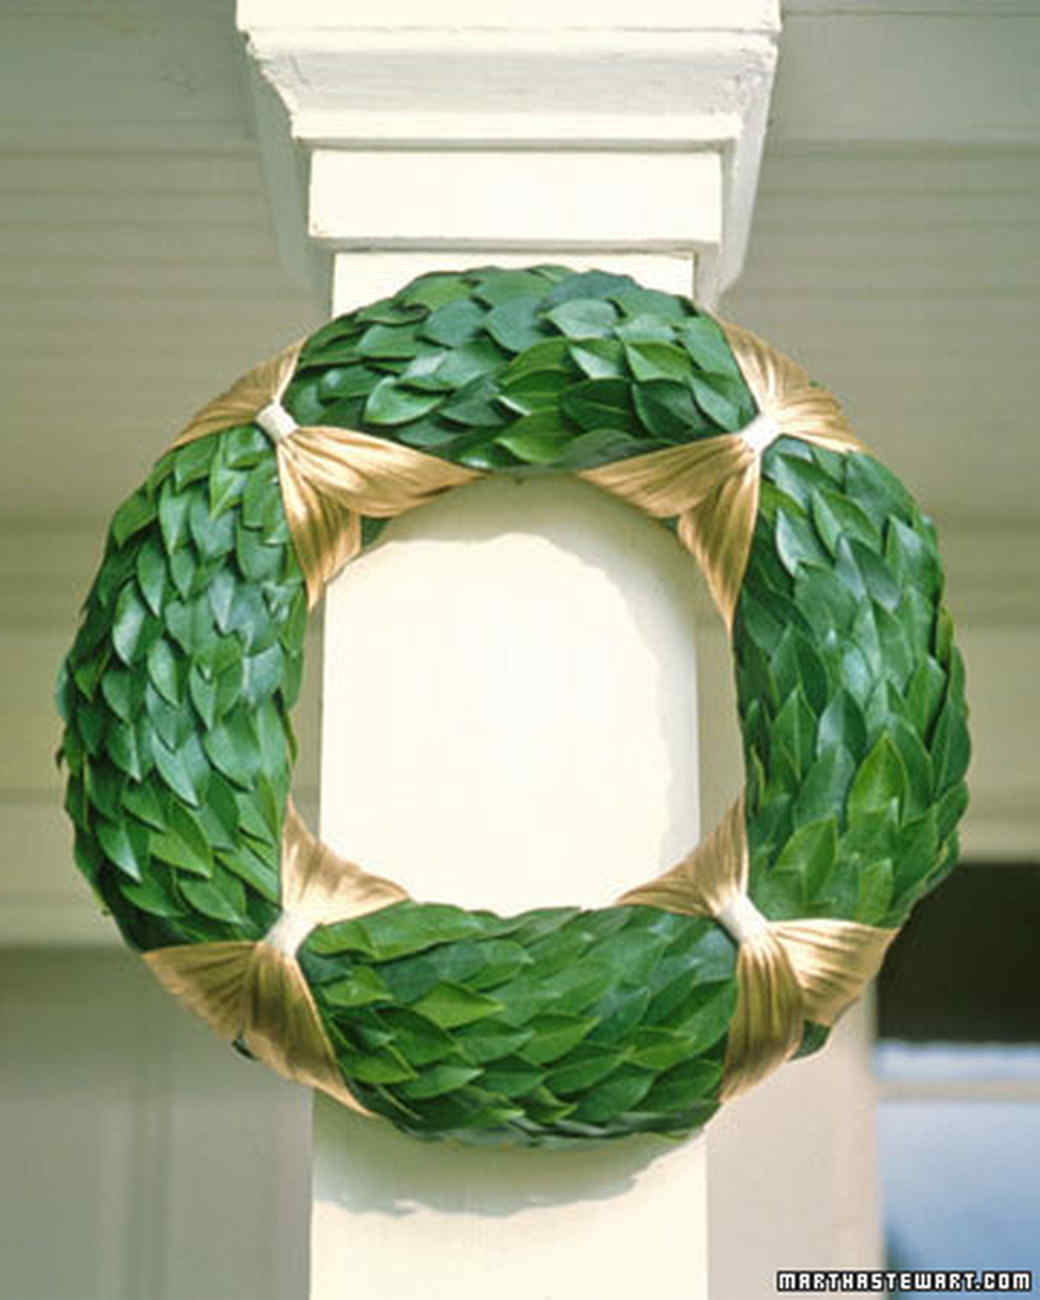 Straw Form and Laurel Wreath